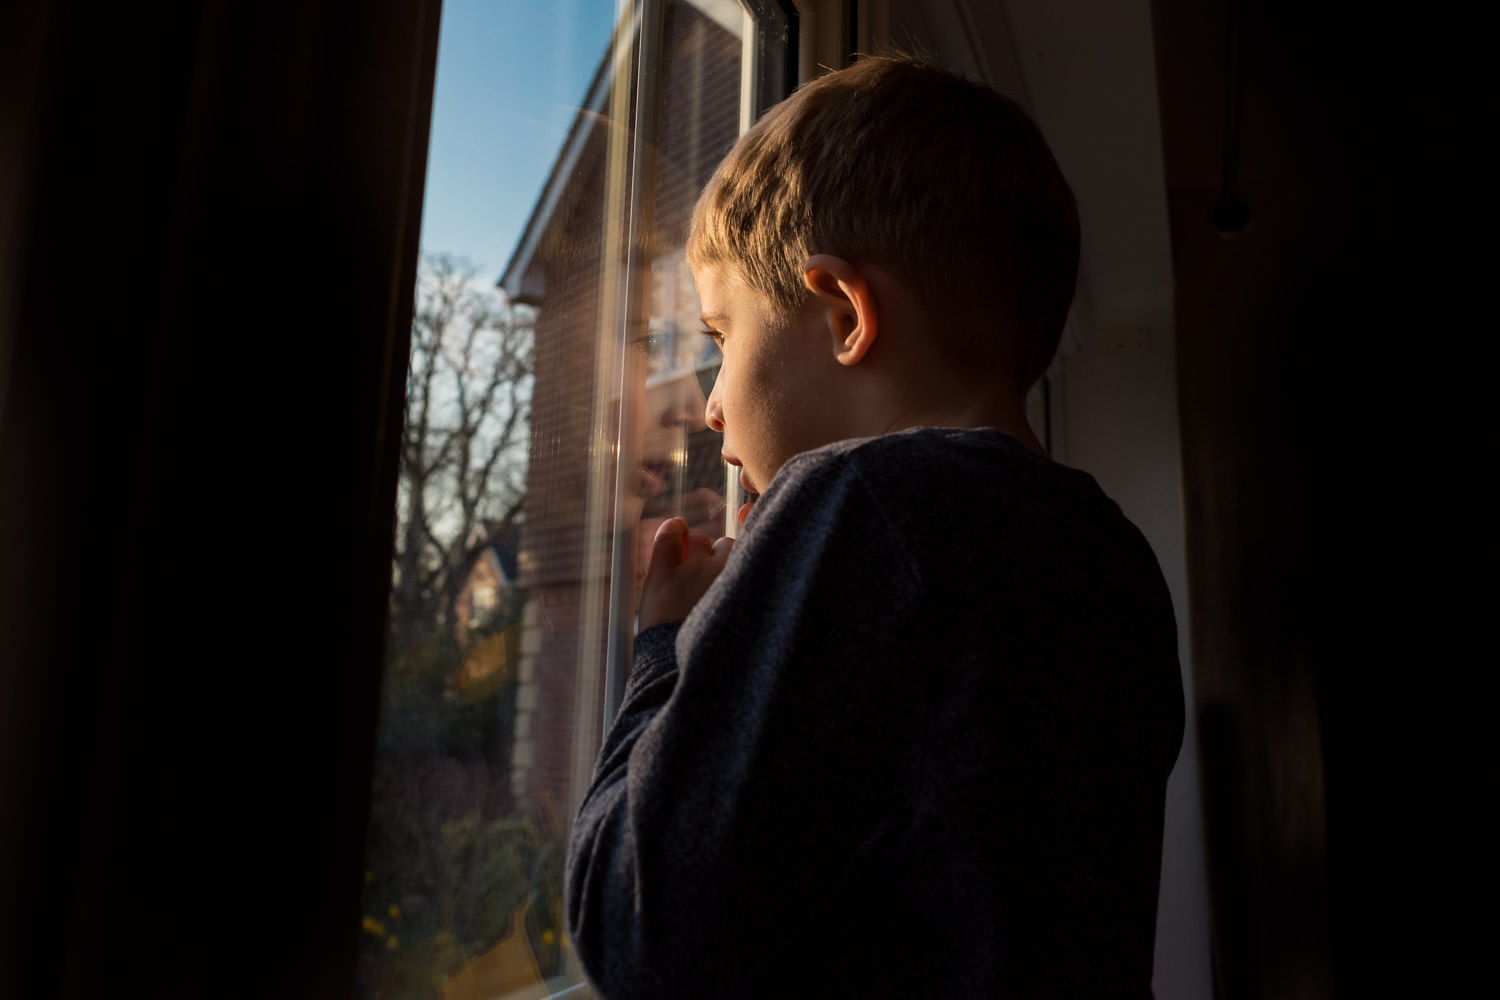 Boy looking out of window with reflection of his face